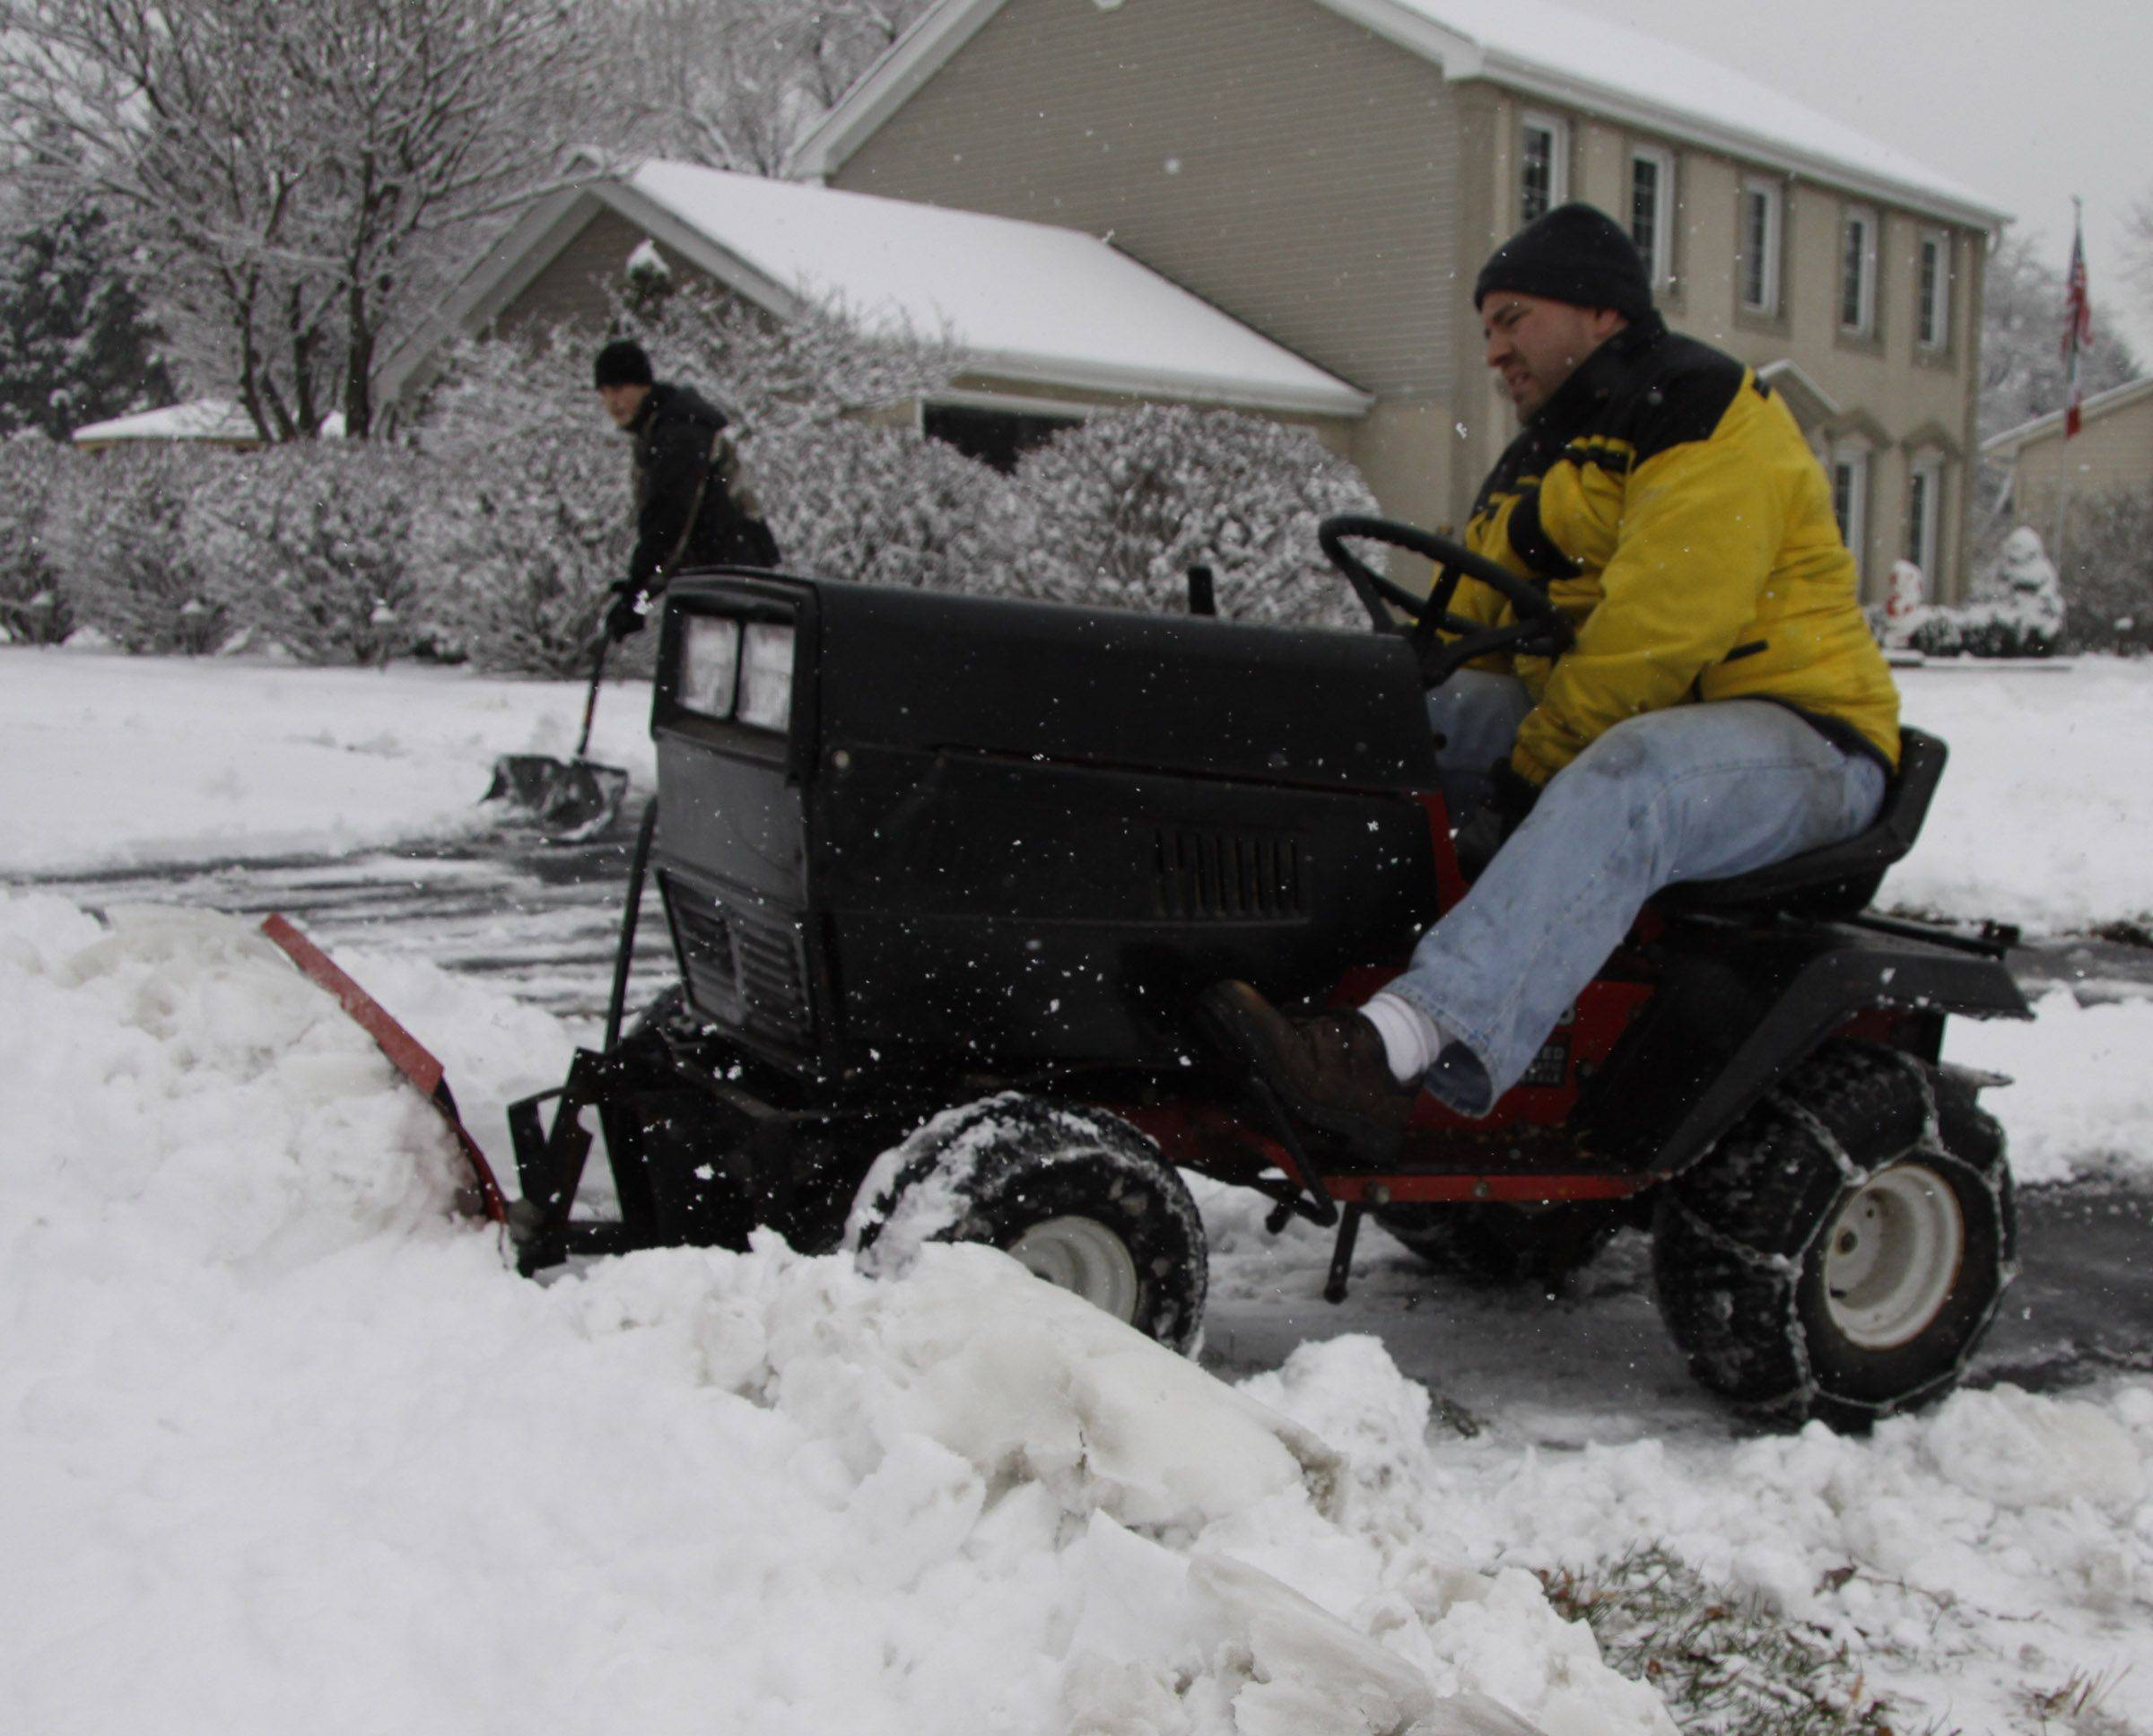 """I do my two neighbors driveways and I plow the sidewalk from Meddowlark to Cardninal every year,"" said Matt West of Glendale Heights ""Our little neighborhood is these three houses on Army Trail, we take care of each other."" He and his sons Mike, pictured, and John were out plowing and shoveling the snow as the first snowstorm of the season hit Saturday morning."